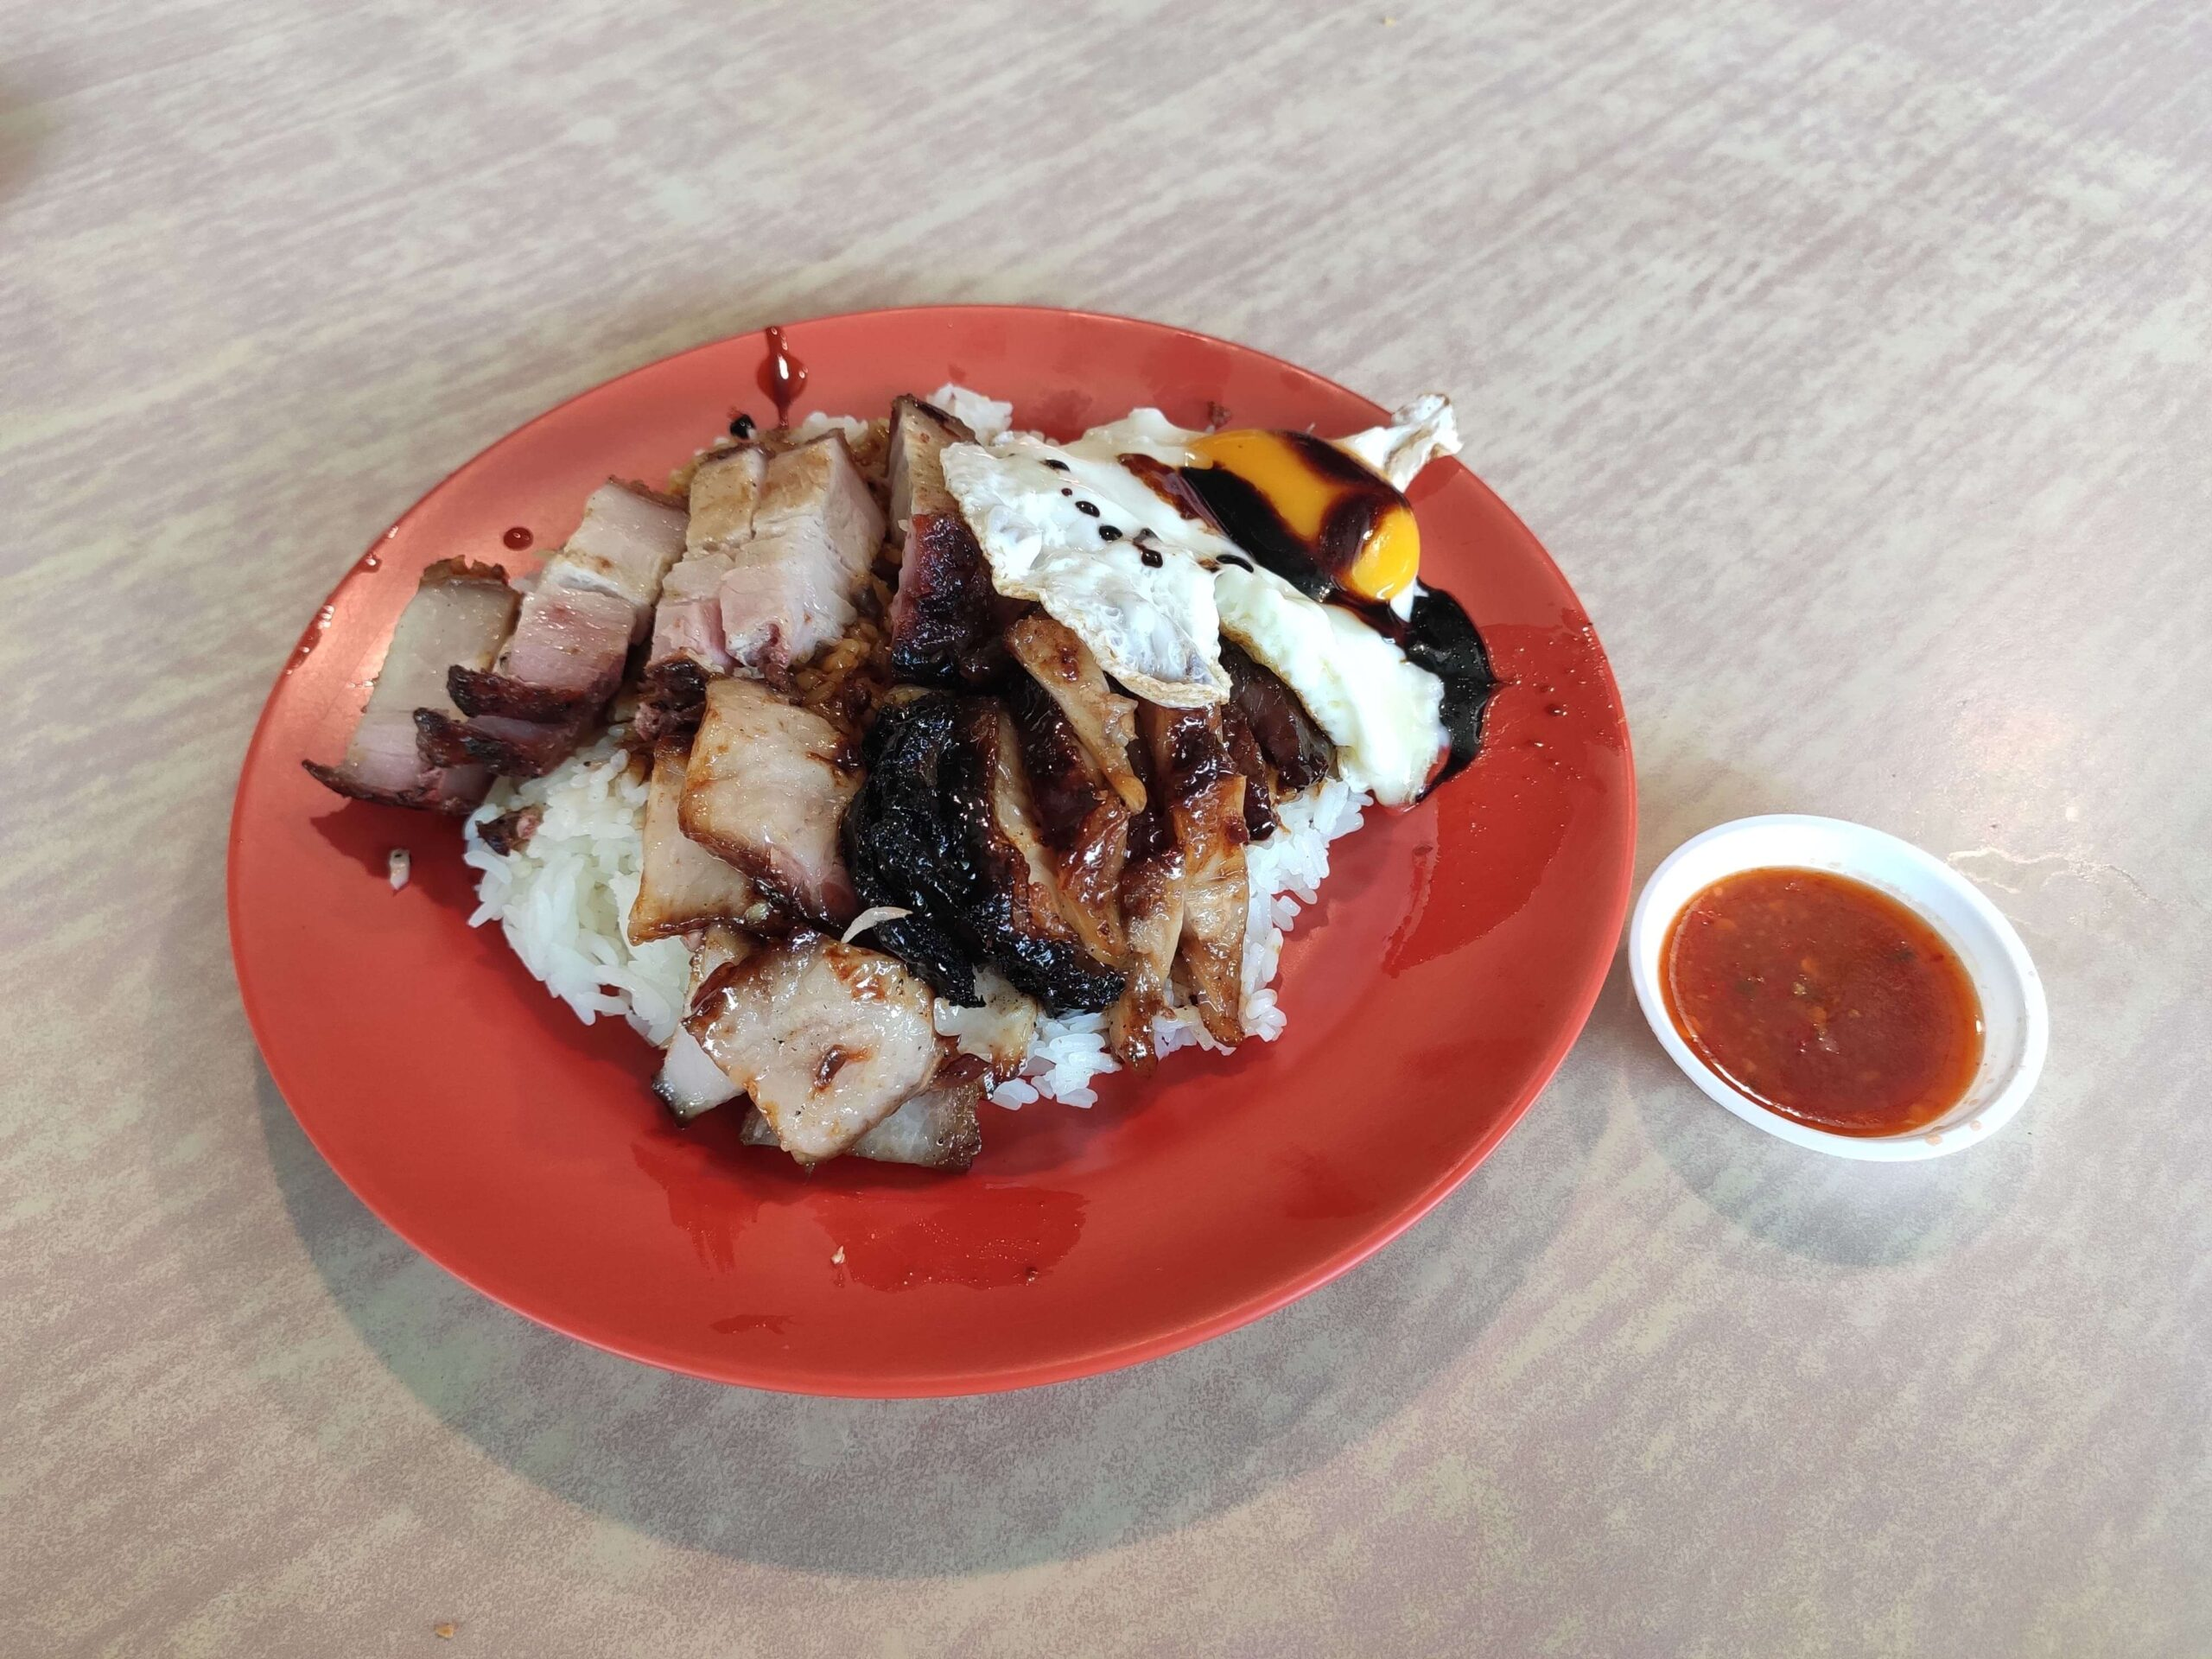 Poh Chan Kee Roasted: Char Siew & Siu Yuk Rice with Chilli